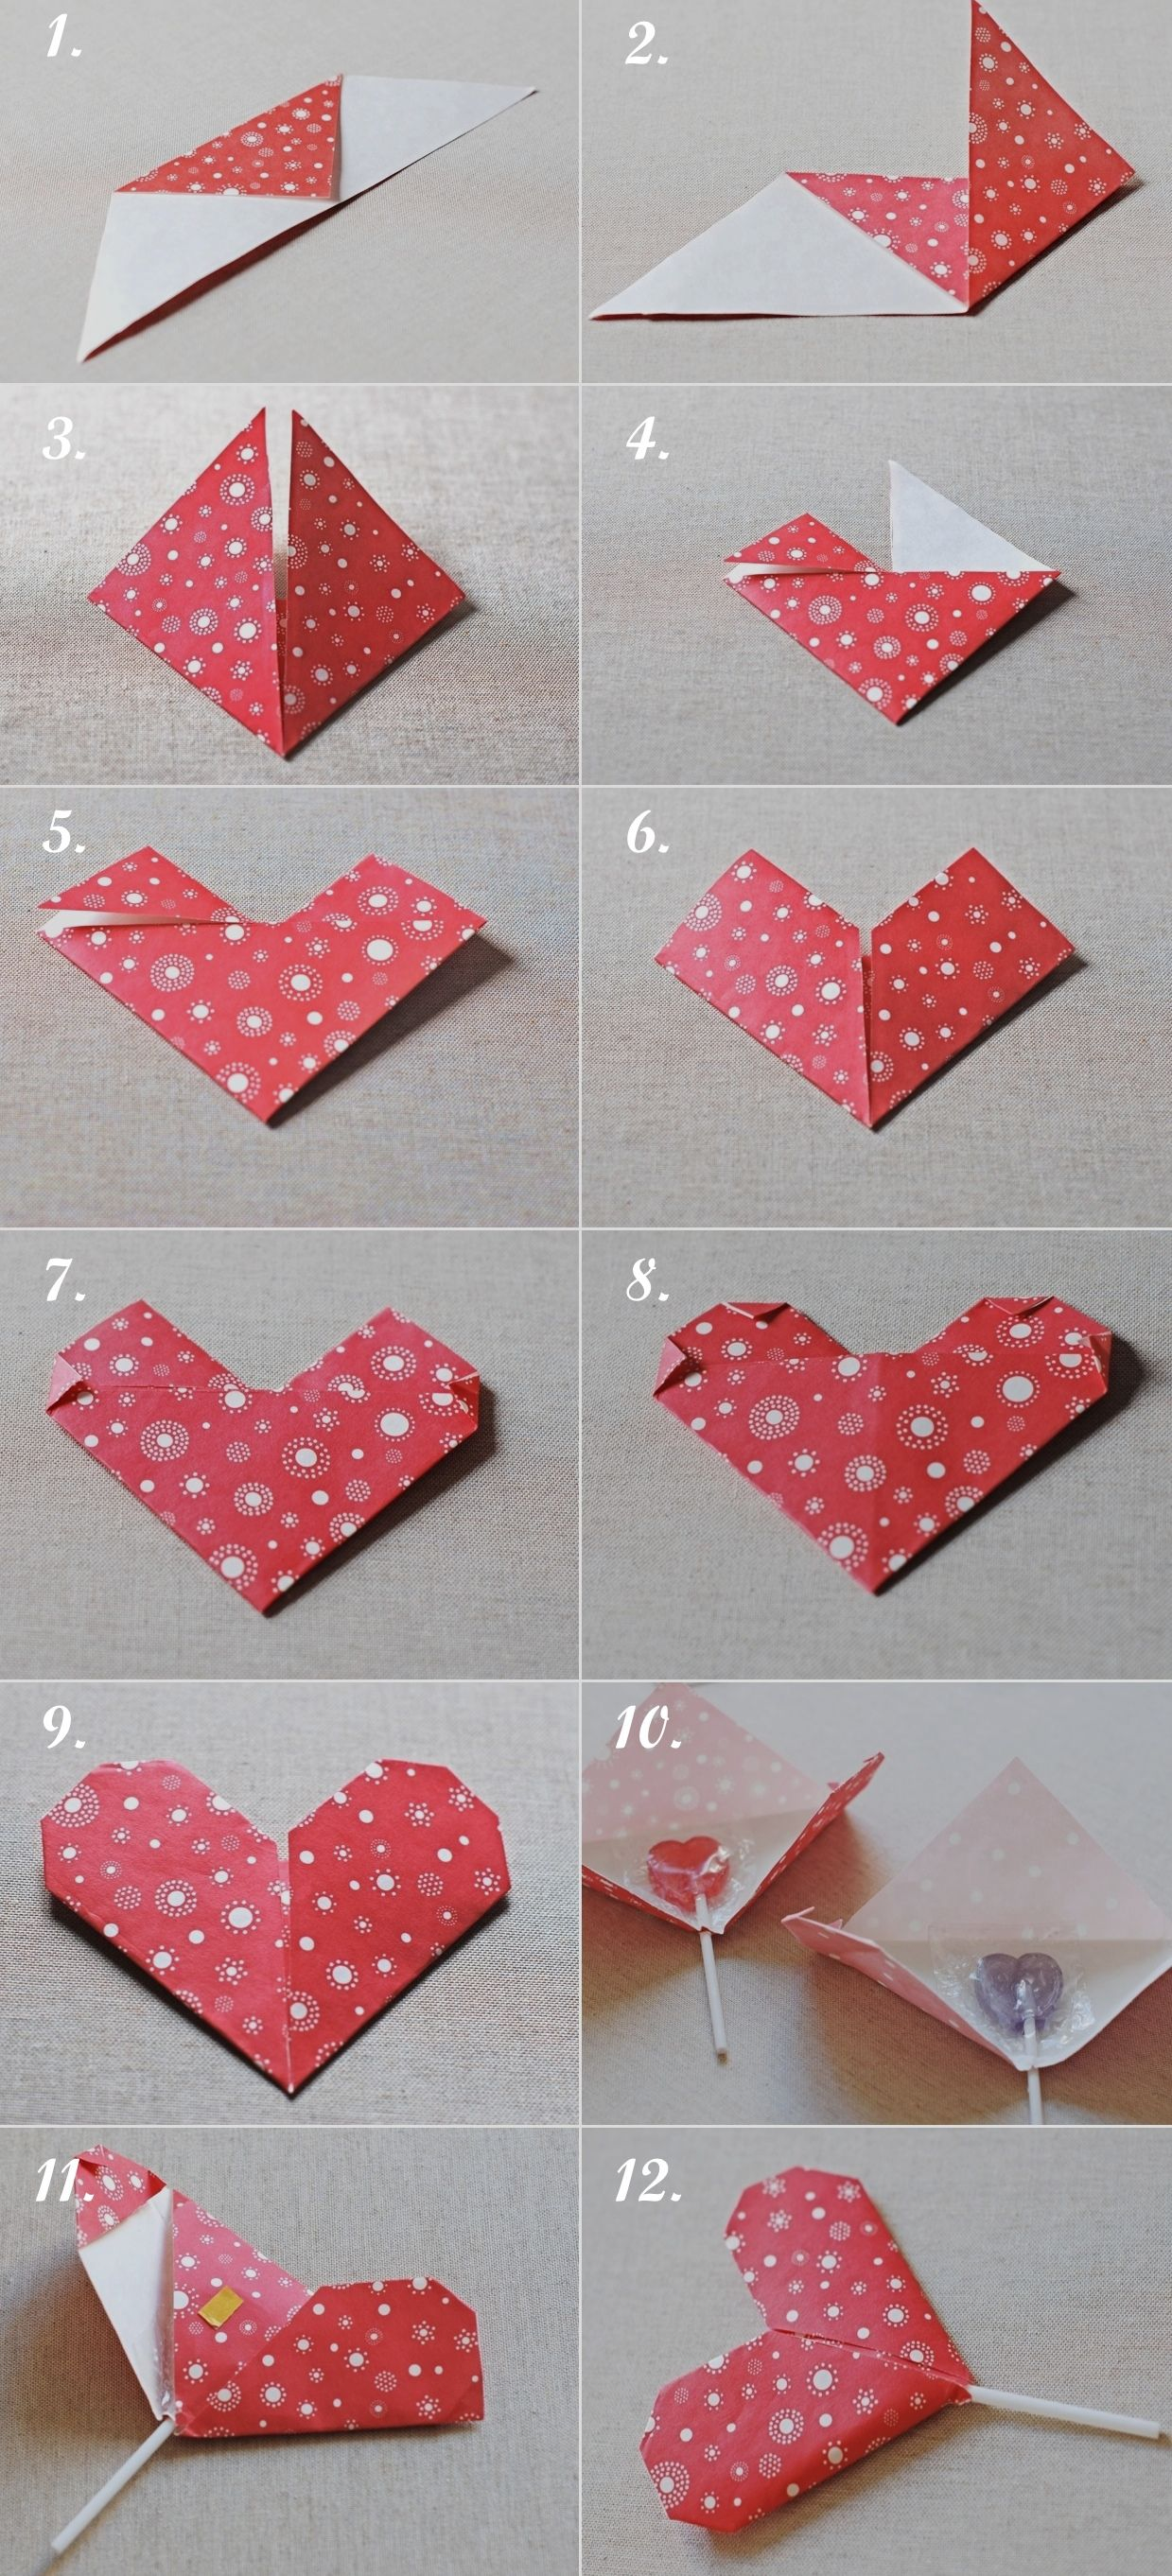 Classroom Valentine S Round Up Holy Craft Classroom Valentine S Round Up Valentines Diy Valentine Crafts Origami Easy